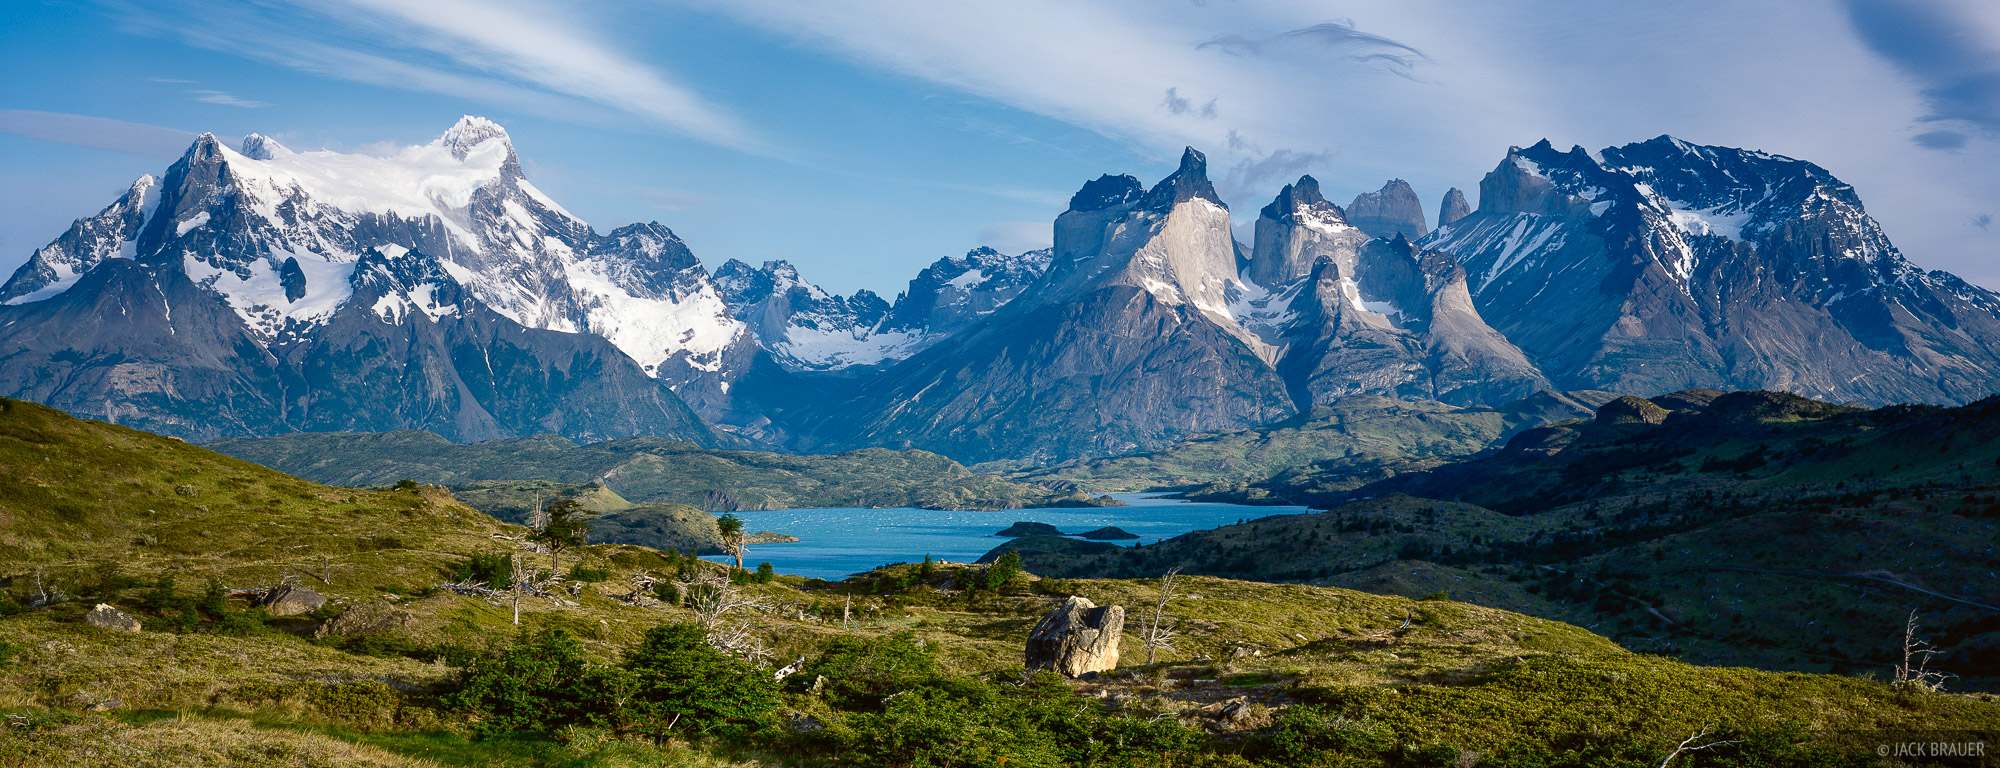 Patagonia: Torres del Paine, Chile : Andes, South America : Mountain ...